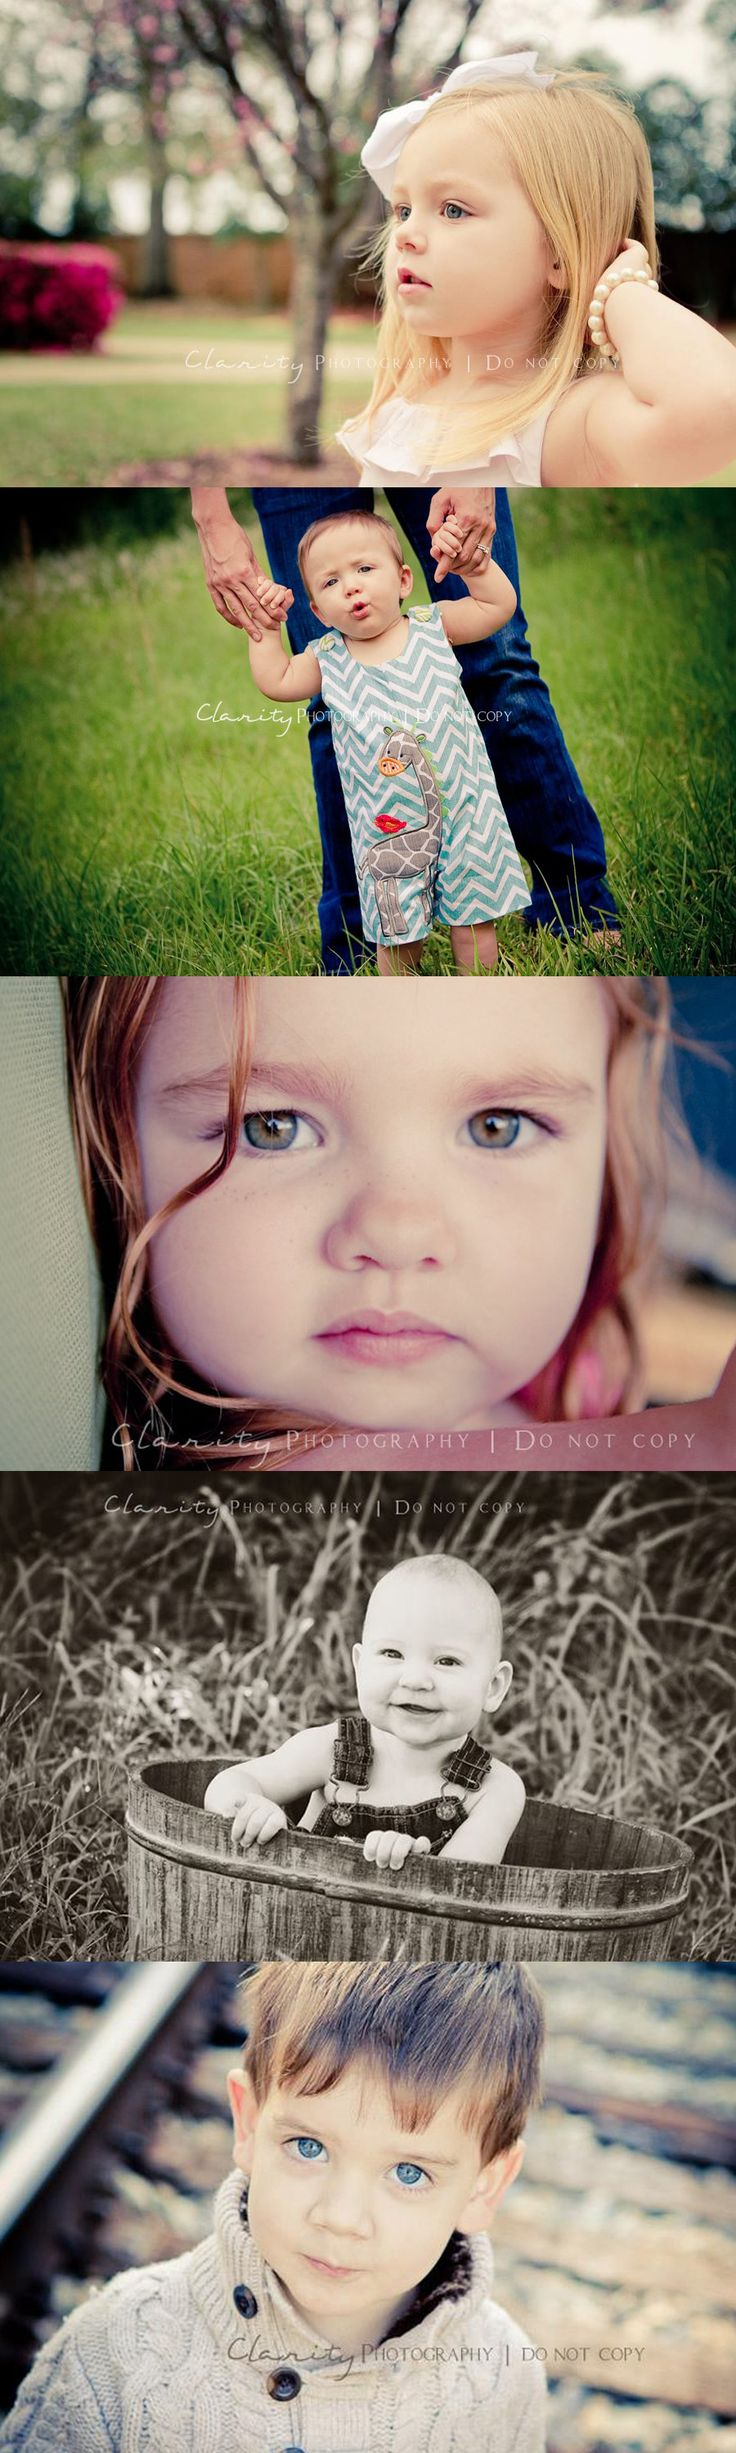 How to blur the background of your images. Easy Peasy!